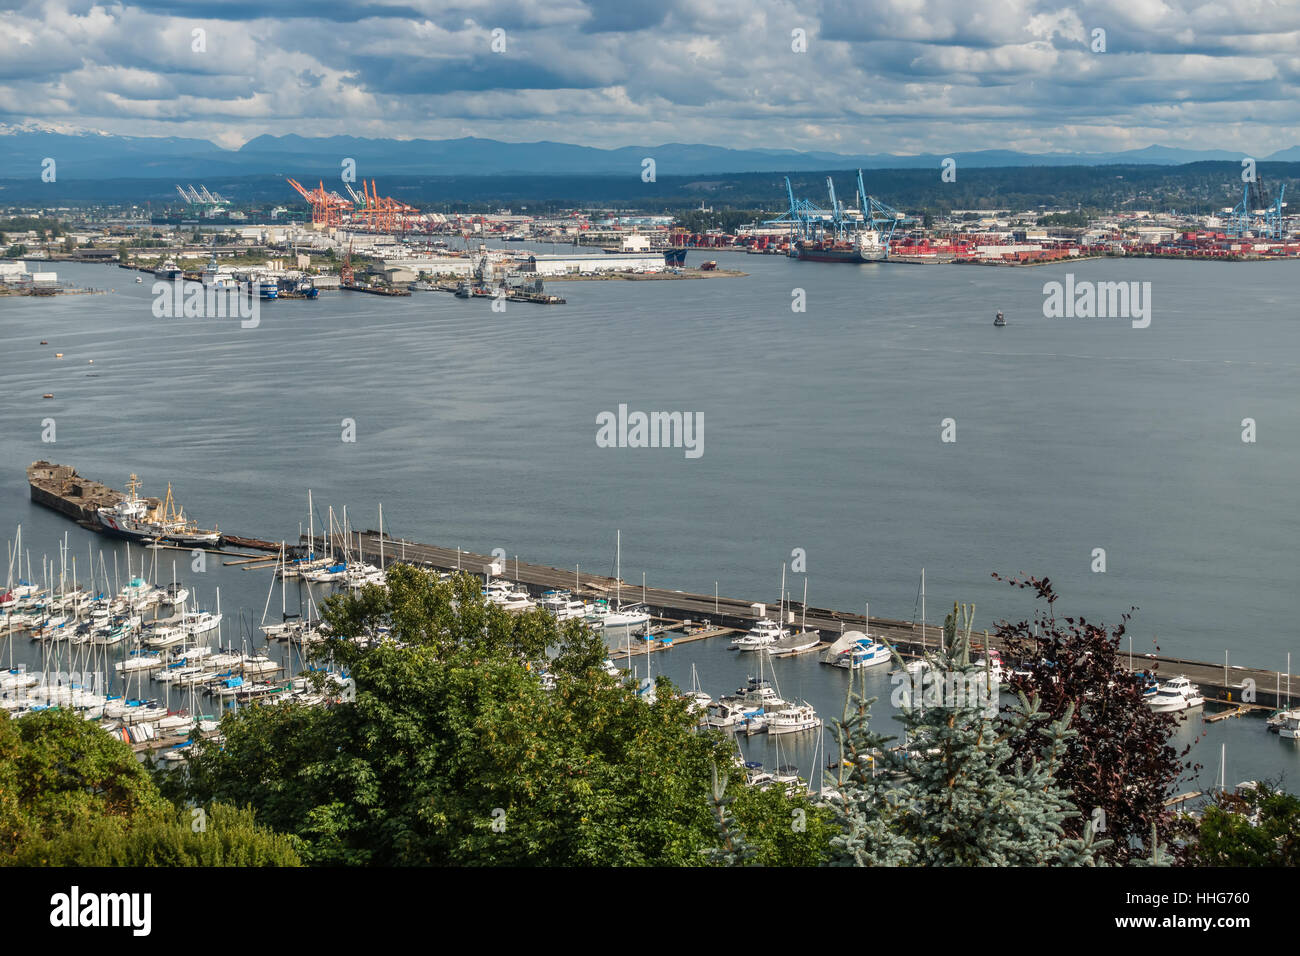 A view of a marina and the Port of Tacoma. - Stock Image